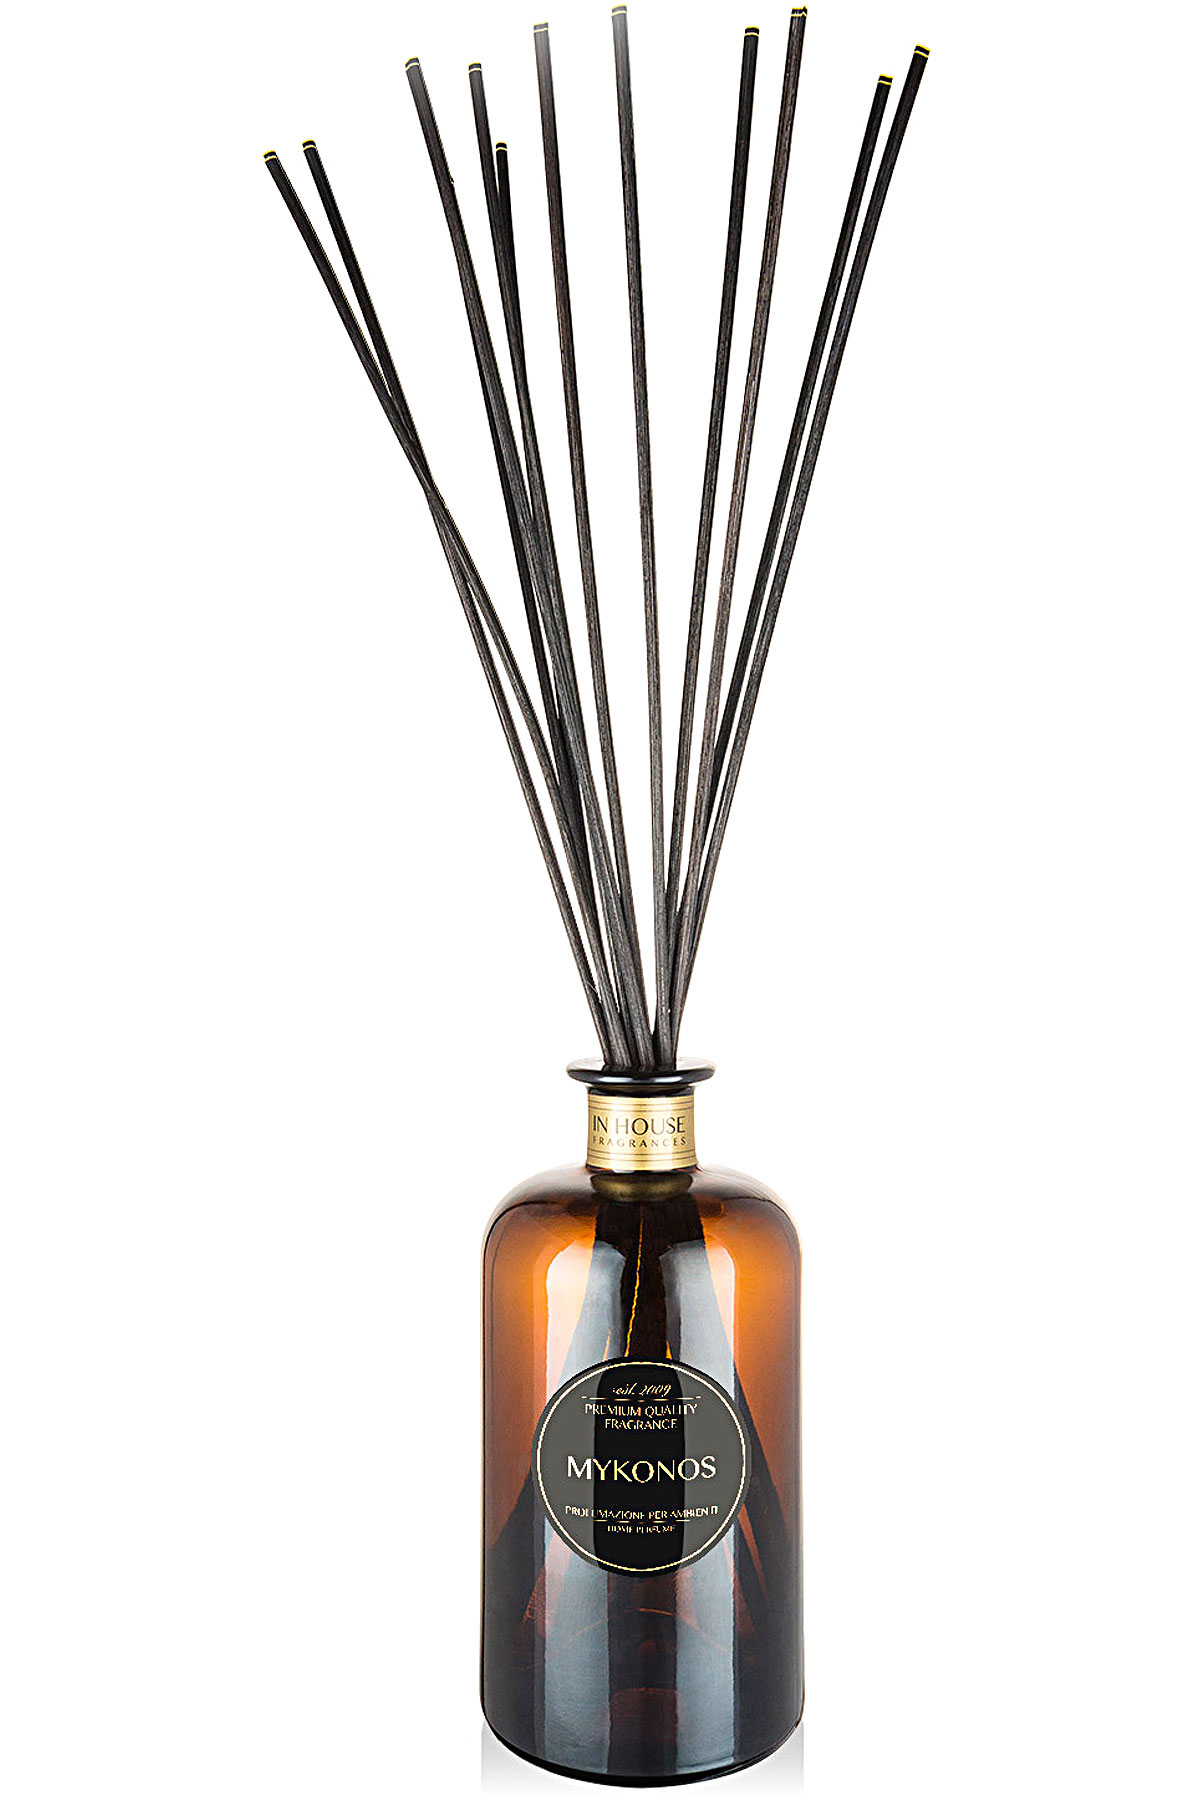 In House Fragrances Home Scents for Men, Mykonos - Home Diffuser - 500 Ml, 2019, 500 ml